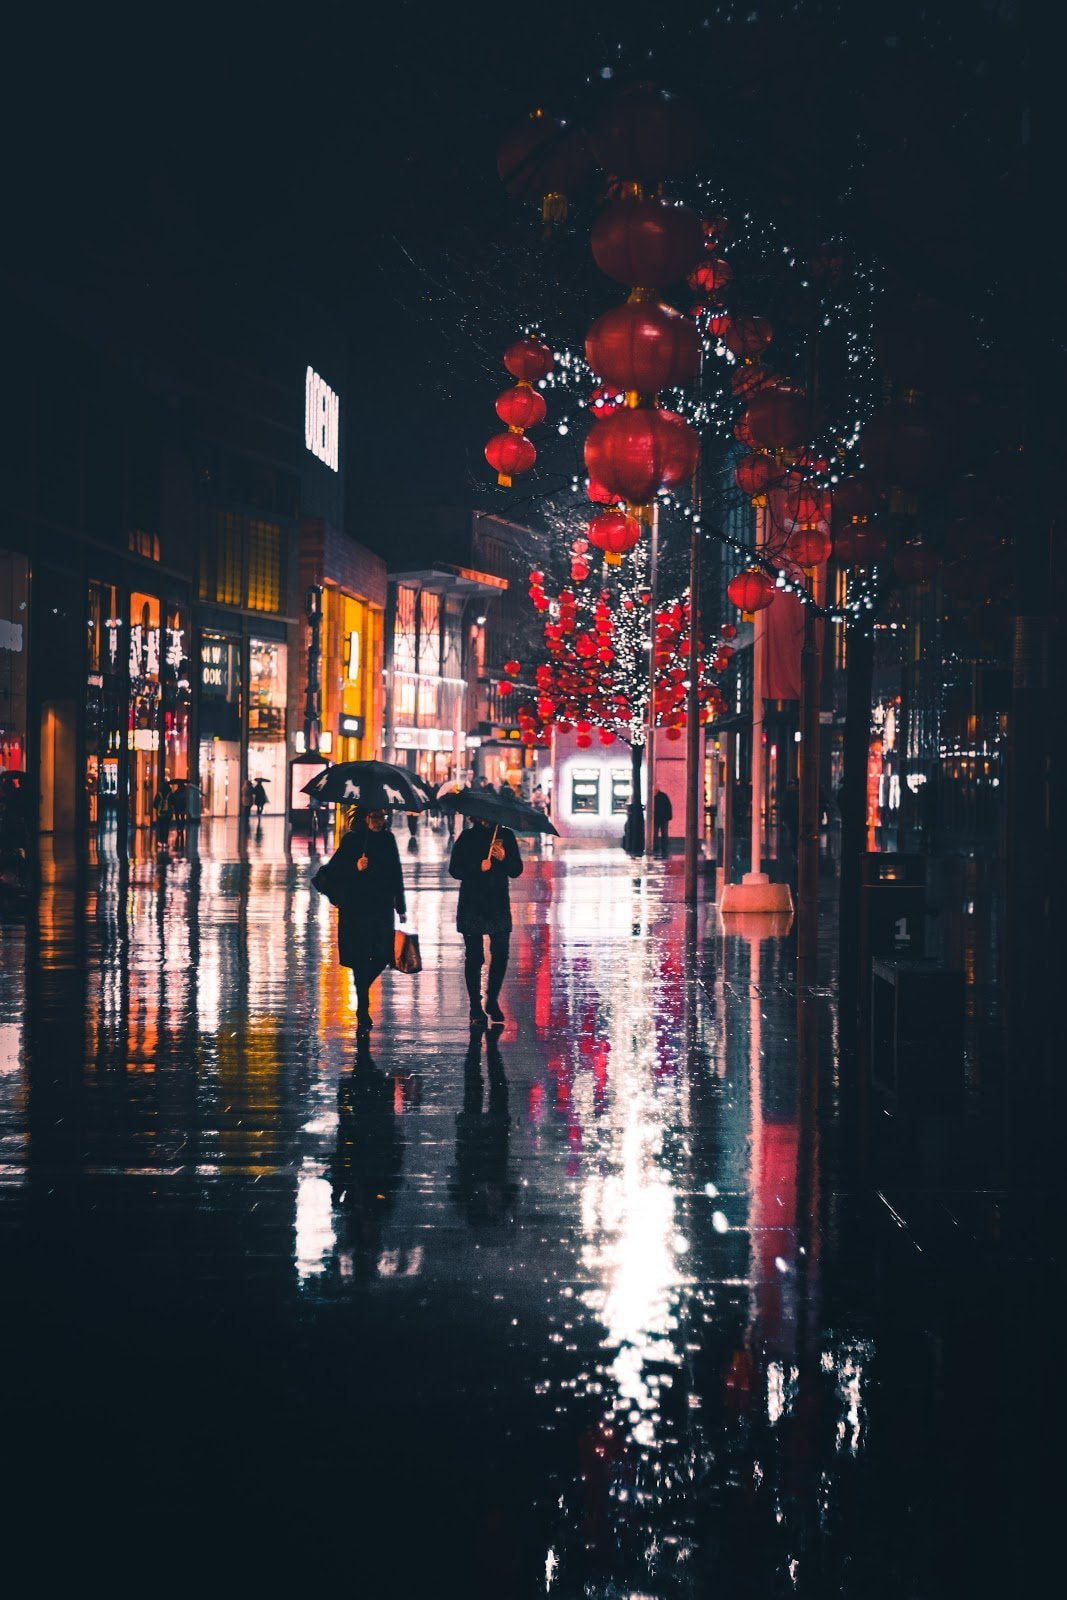 Two people holding umbrellas walking through a rainy street by Jack Finnigan